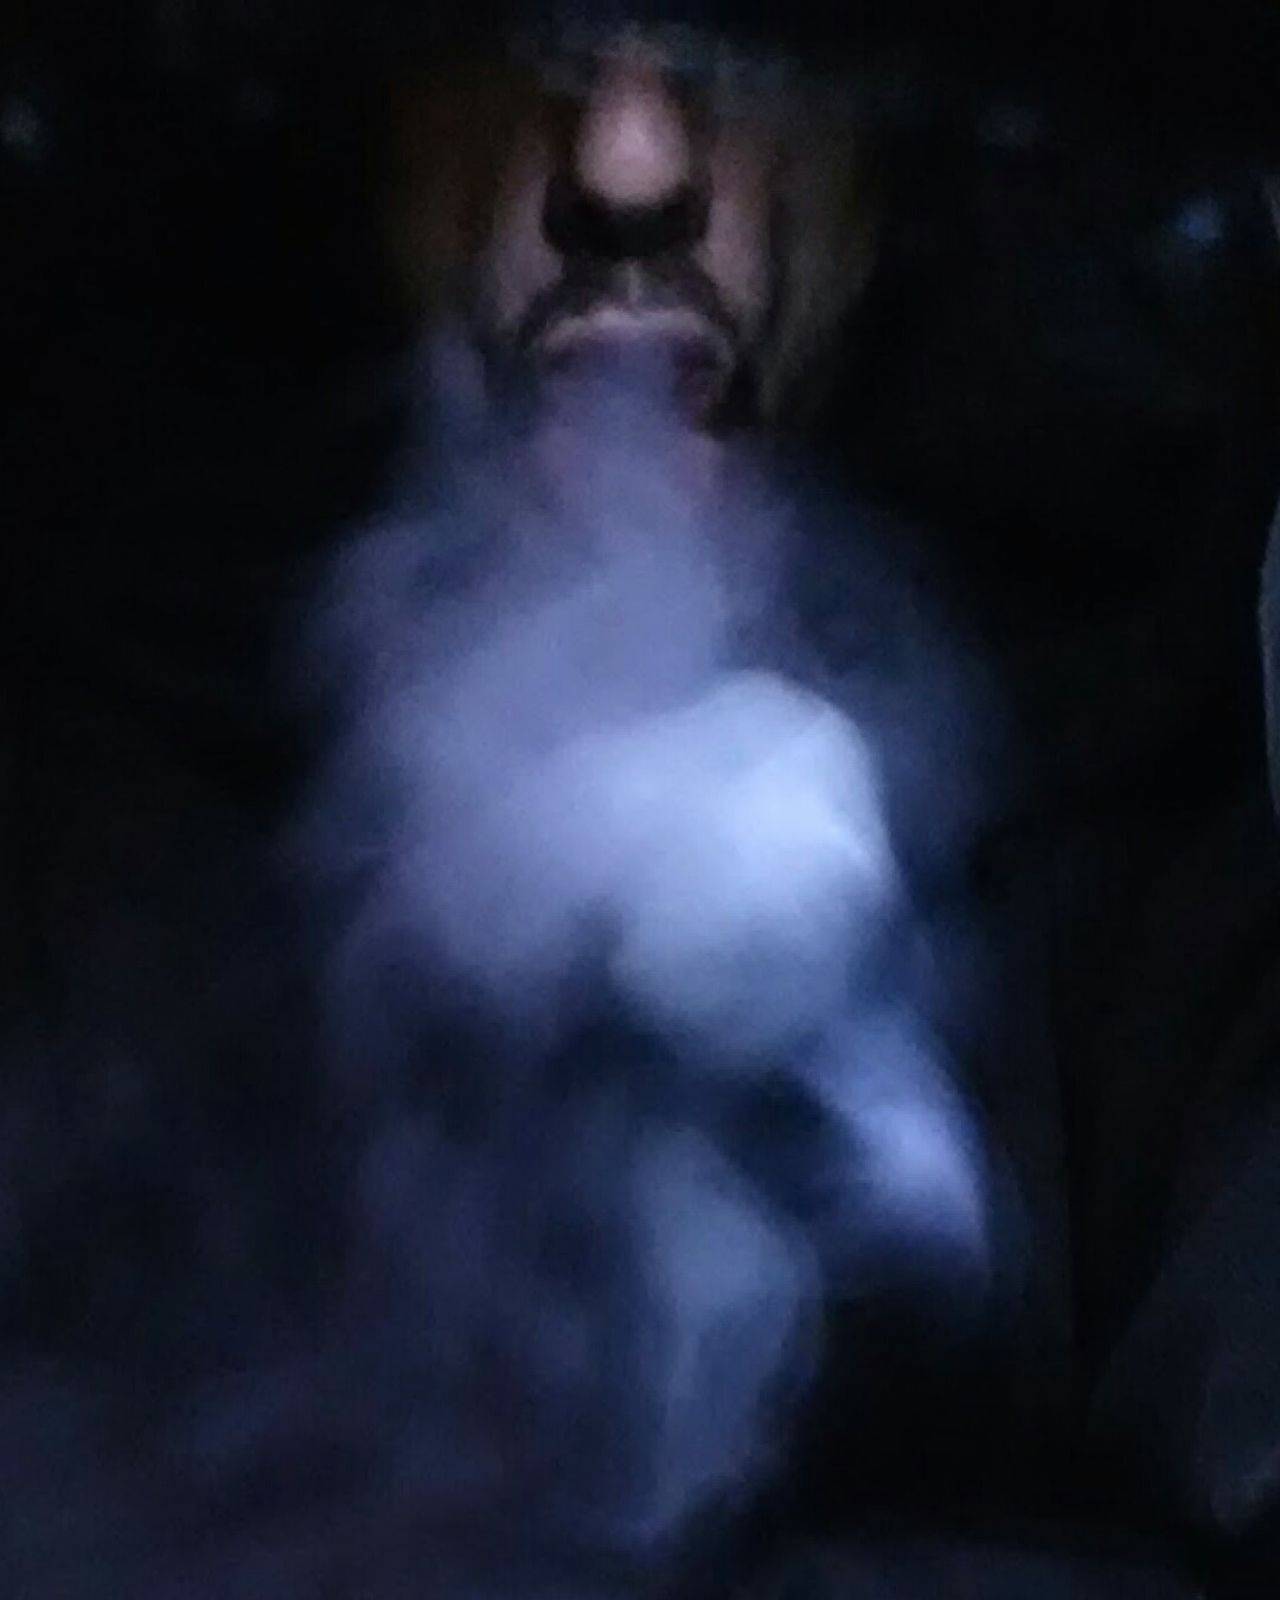 The Magic Mission Blurred Motion Monsters Black Background Smoketricks Oddities Strange Clouds Smoke Tricks Motion Illuminated Glowing Smoke Smoke♥ Photography Dark Exhale Demons All Around Us Demons Inside